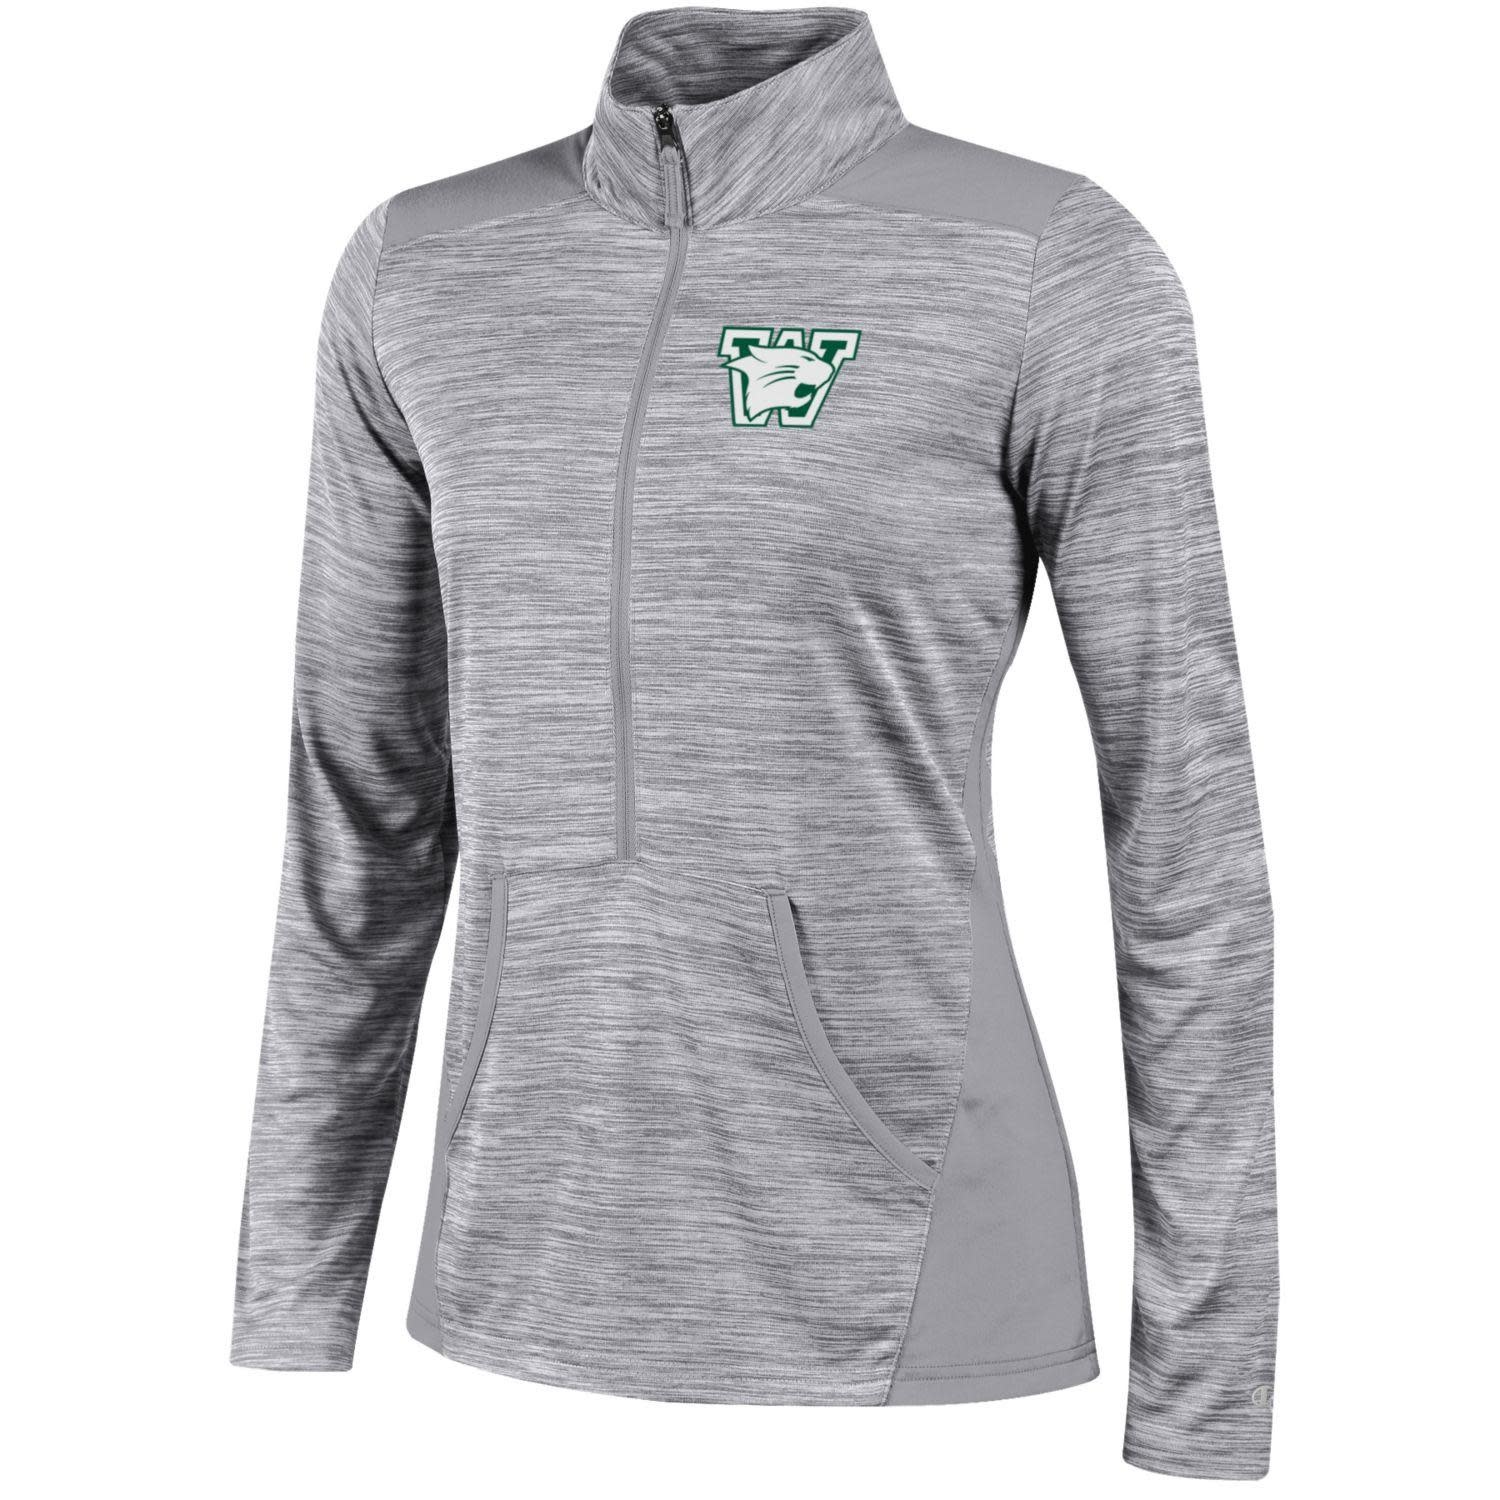 Champion Pullover: Champion Ladies 1/2 Zip Active Gray w/Pockets and Logo